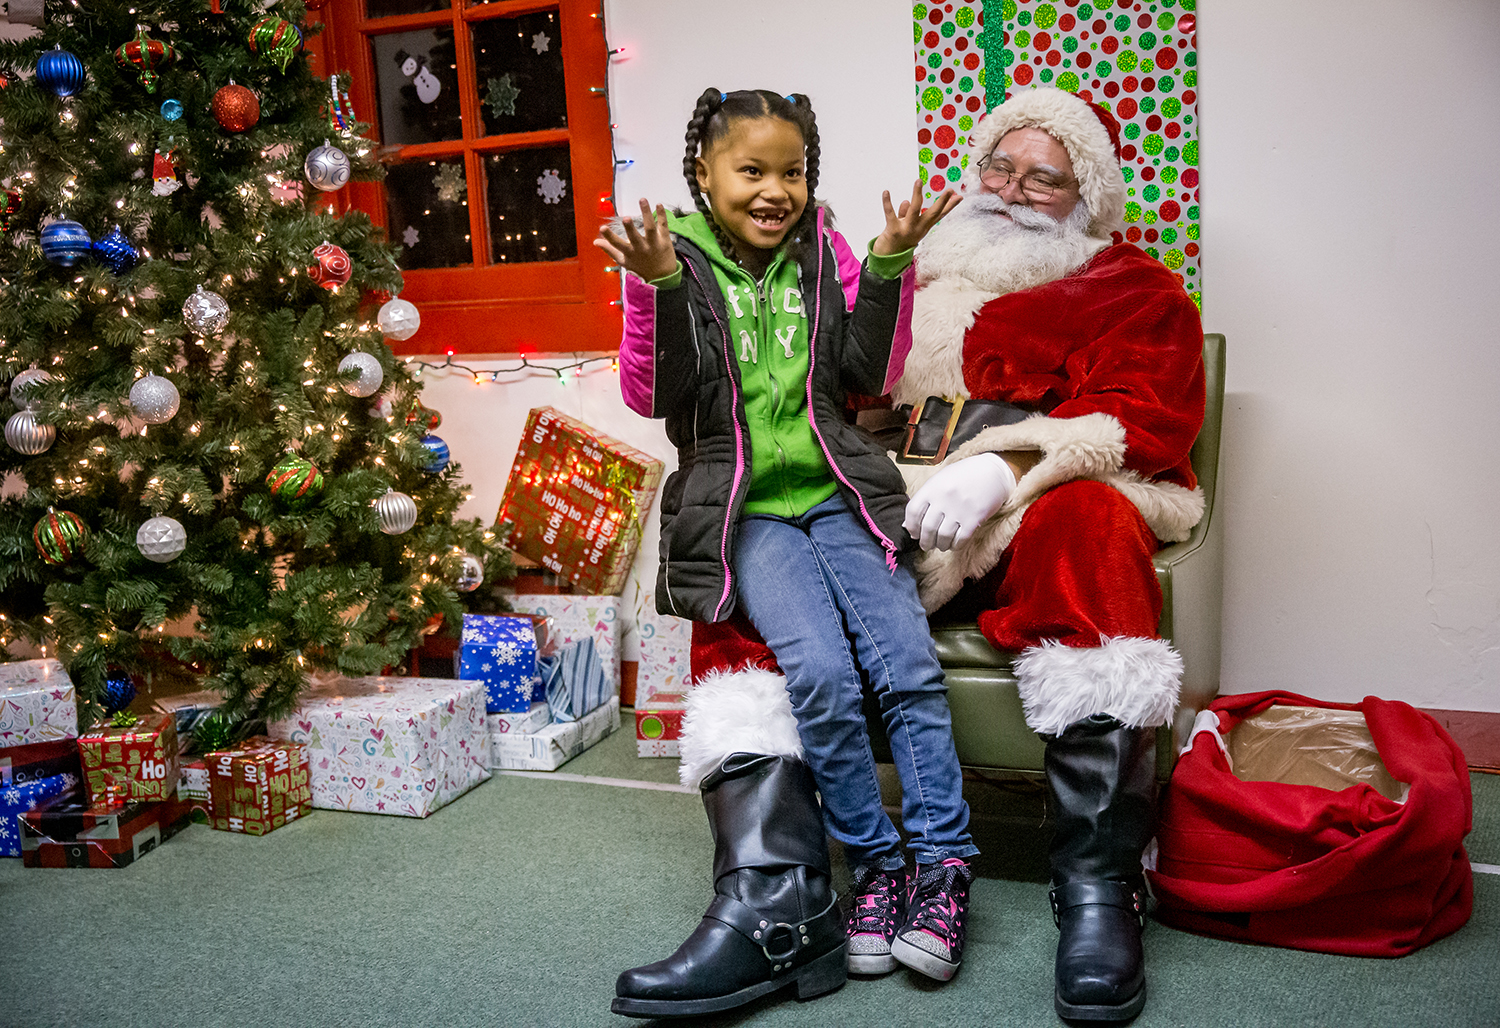 Jaedyn Richards, 8, gets stumped while trying to recite the order of Santa's reindeer after telling Santa what she wanted for Christmas at the Springfield Park District's Santa House at Robin Roberts Stadium, Friday, Dec. 21, 2018, in Springfield, Ill. The last chance to see Santa before he leaves for the North Pole is on Saturday from 11 a.m. to 6 p.m. with admission being free. The Springfield Park District's Santa House, located next to Robin Roberts Stadium in Springfield, has been an area family tradition for decades.  [Justin L. Fowler/The State Journal-Register]